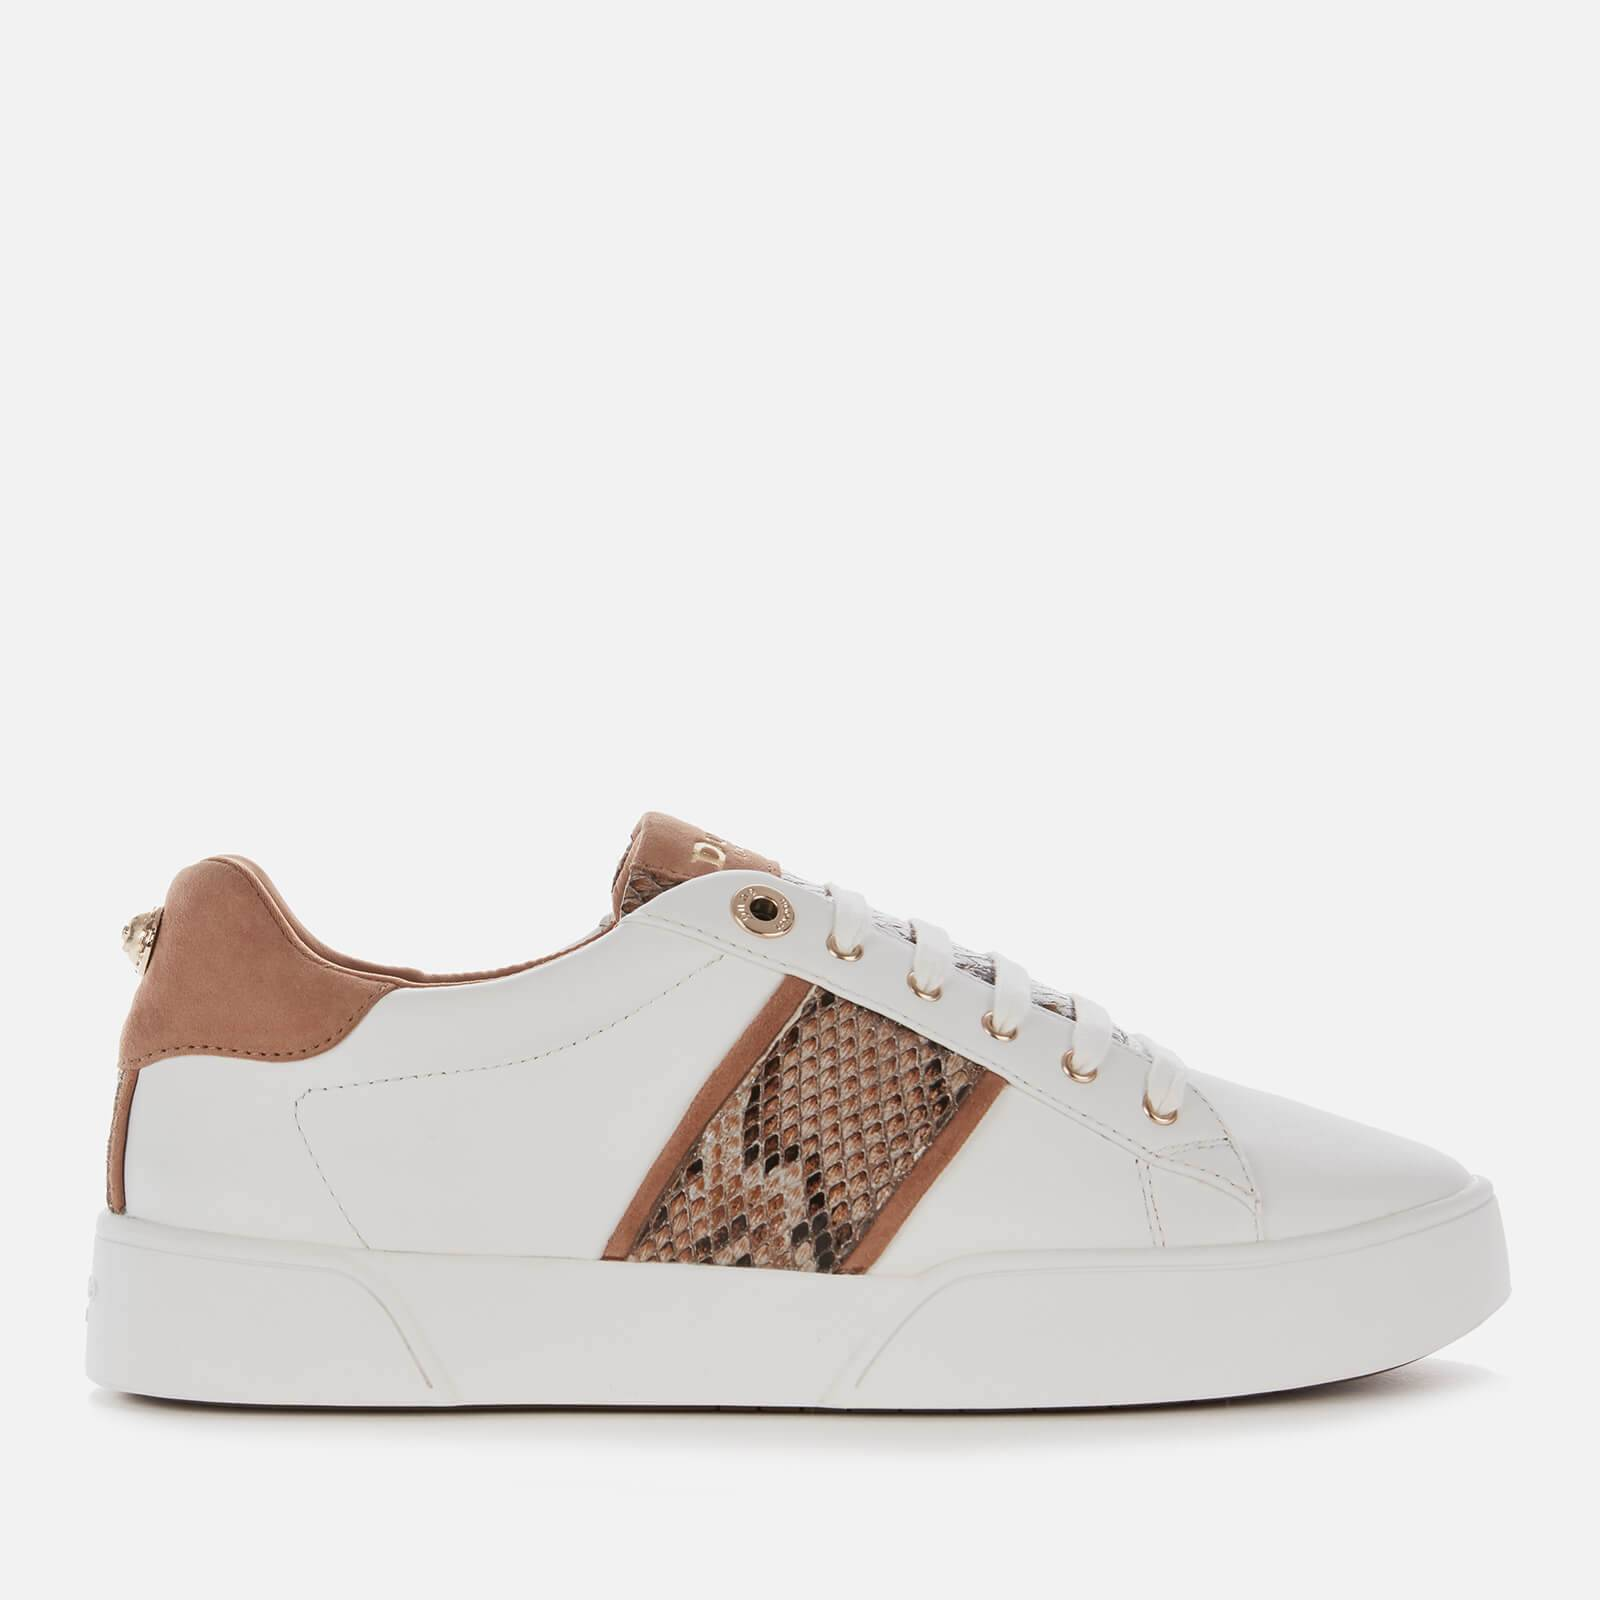 Dune Women's Elsie S Leather Low Top Trainers - White Reptile Print - UK 7